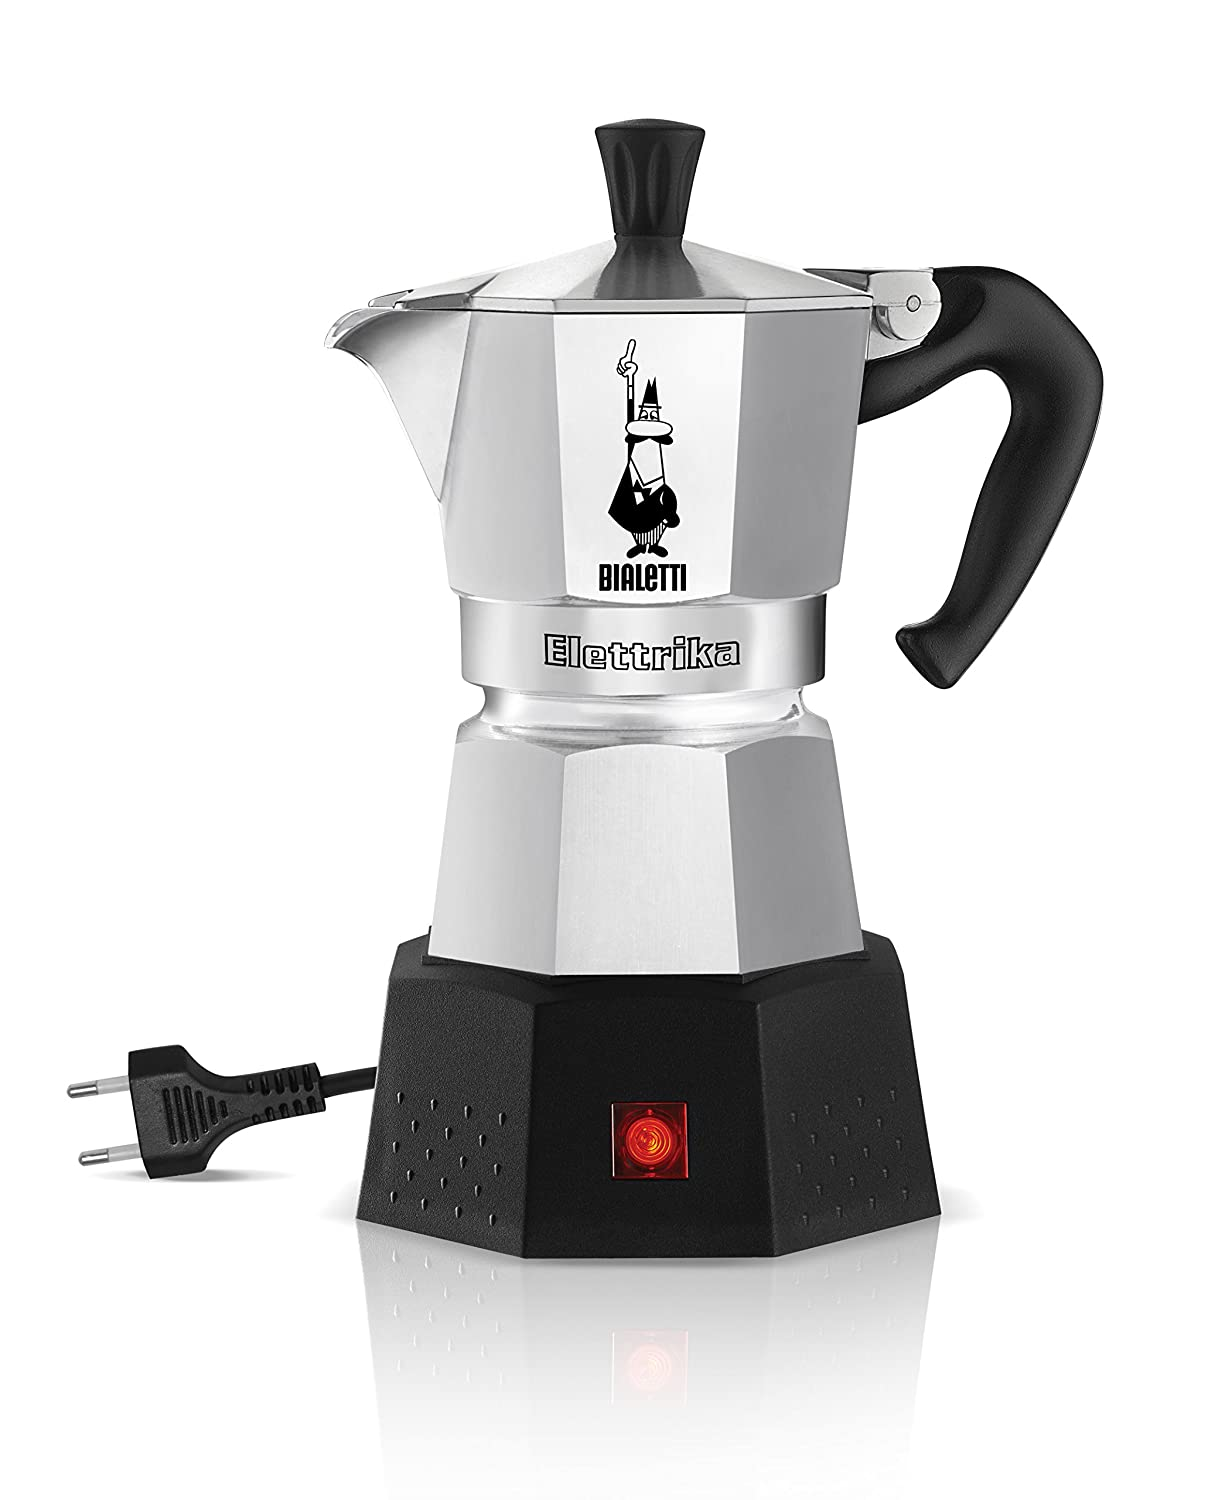 Best Coffee And Espresso Maker Reviews